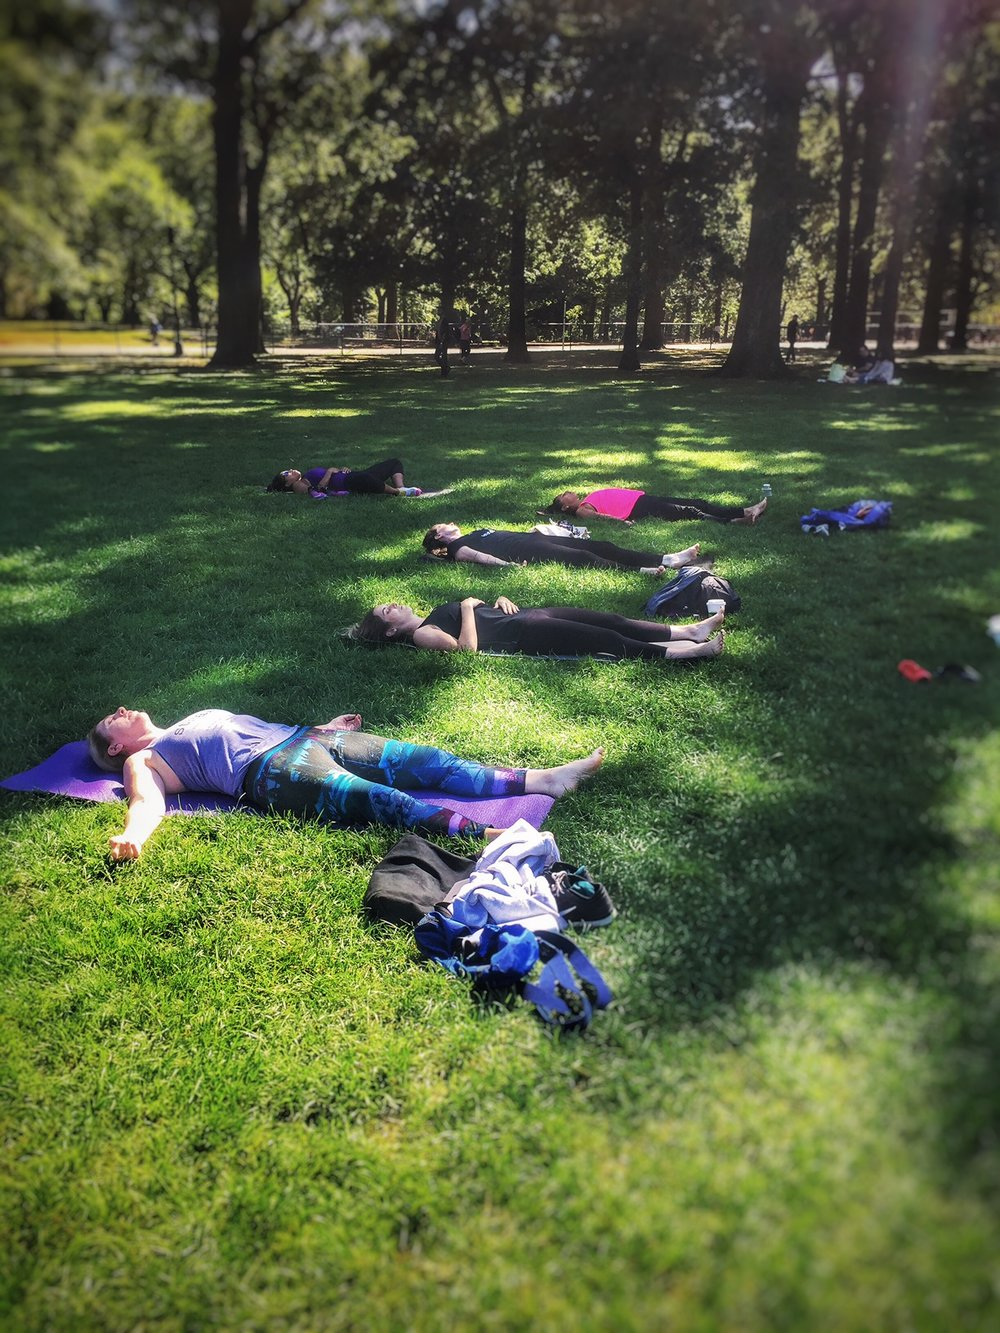 """ Thanks again Sammee for getting us out to stretch, breathe, sway & laugh surrounded by all that makes Central Park so spectacular.""    9/17/16 ENERGIZE - Sheep Meadow, Central Park"